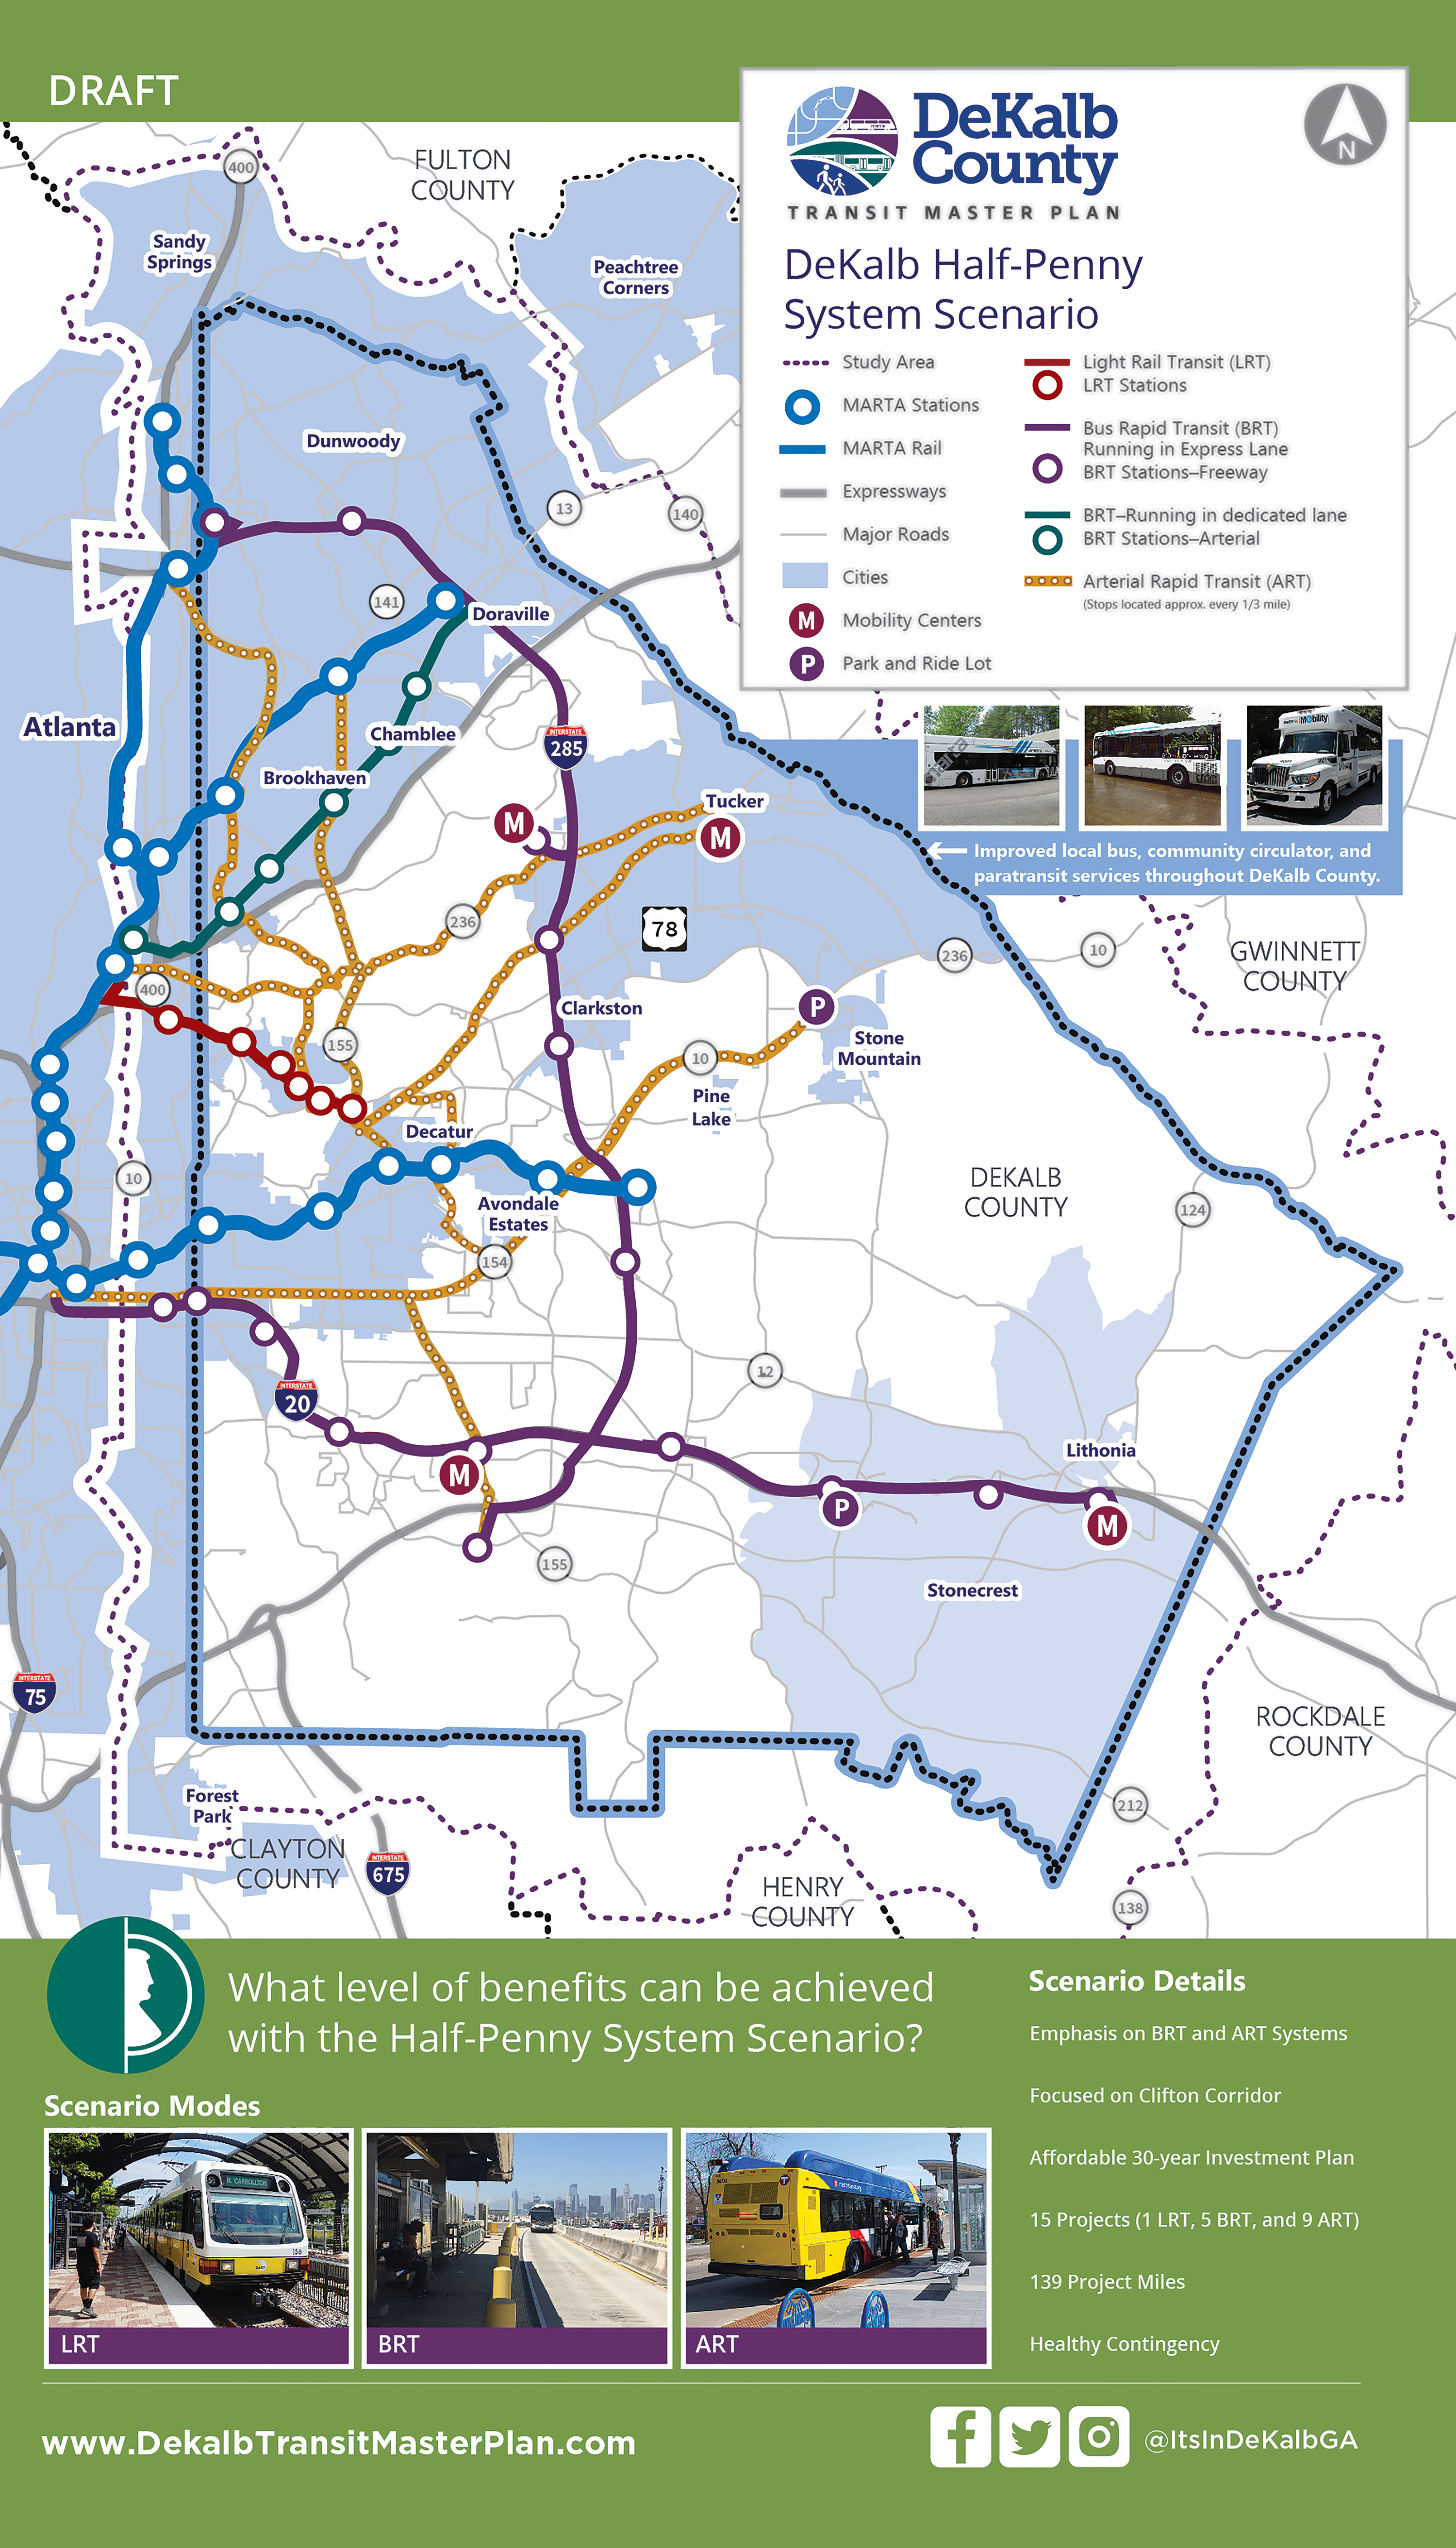 DeKalb County Half-Penny System Scenario features 15 projects-1 LRT, 5, BRT, and 9 ART. A total of 139 miles, which are affordable under a half-penny sales tax.